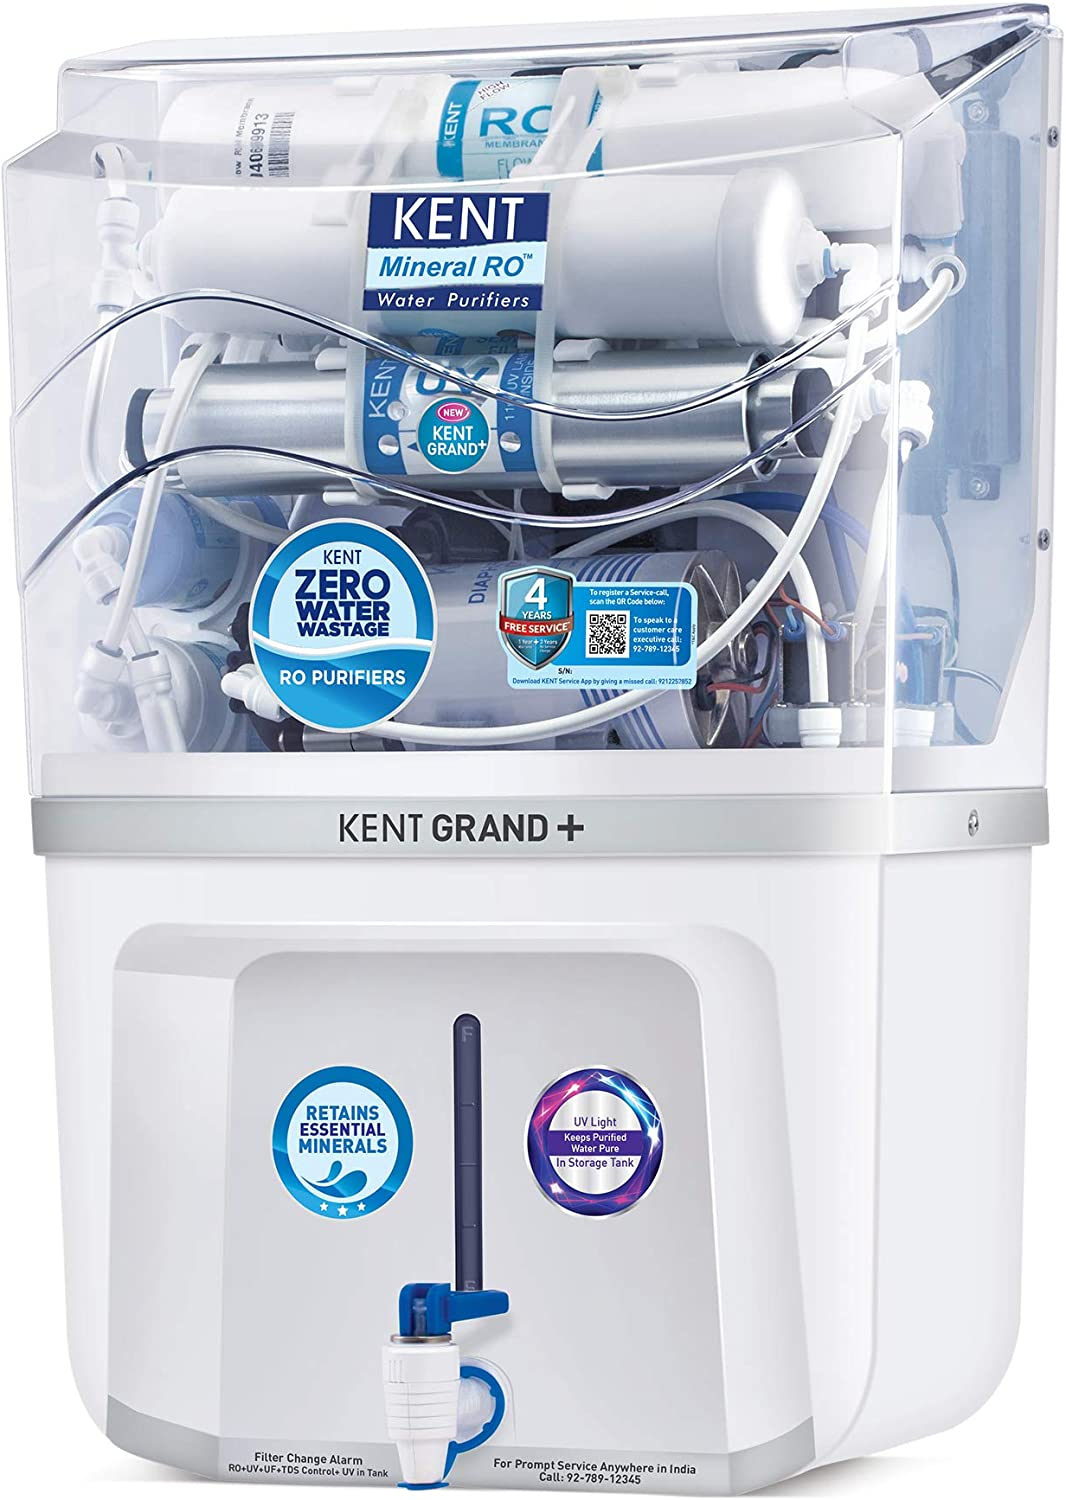 KENT-Grand-Plus-best-Water-Purifier-in-India-for-Home